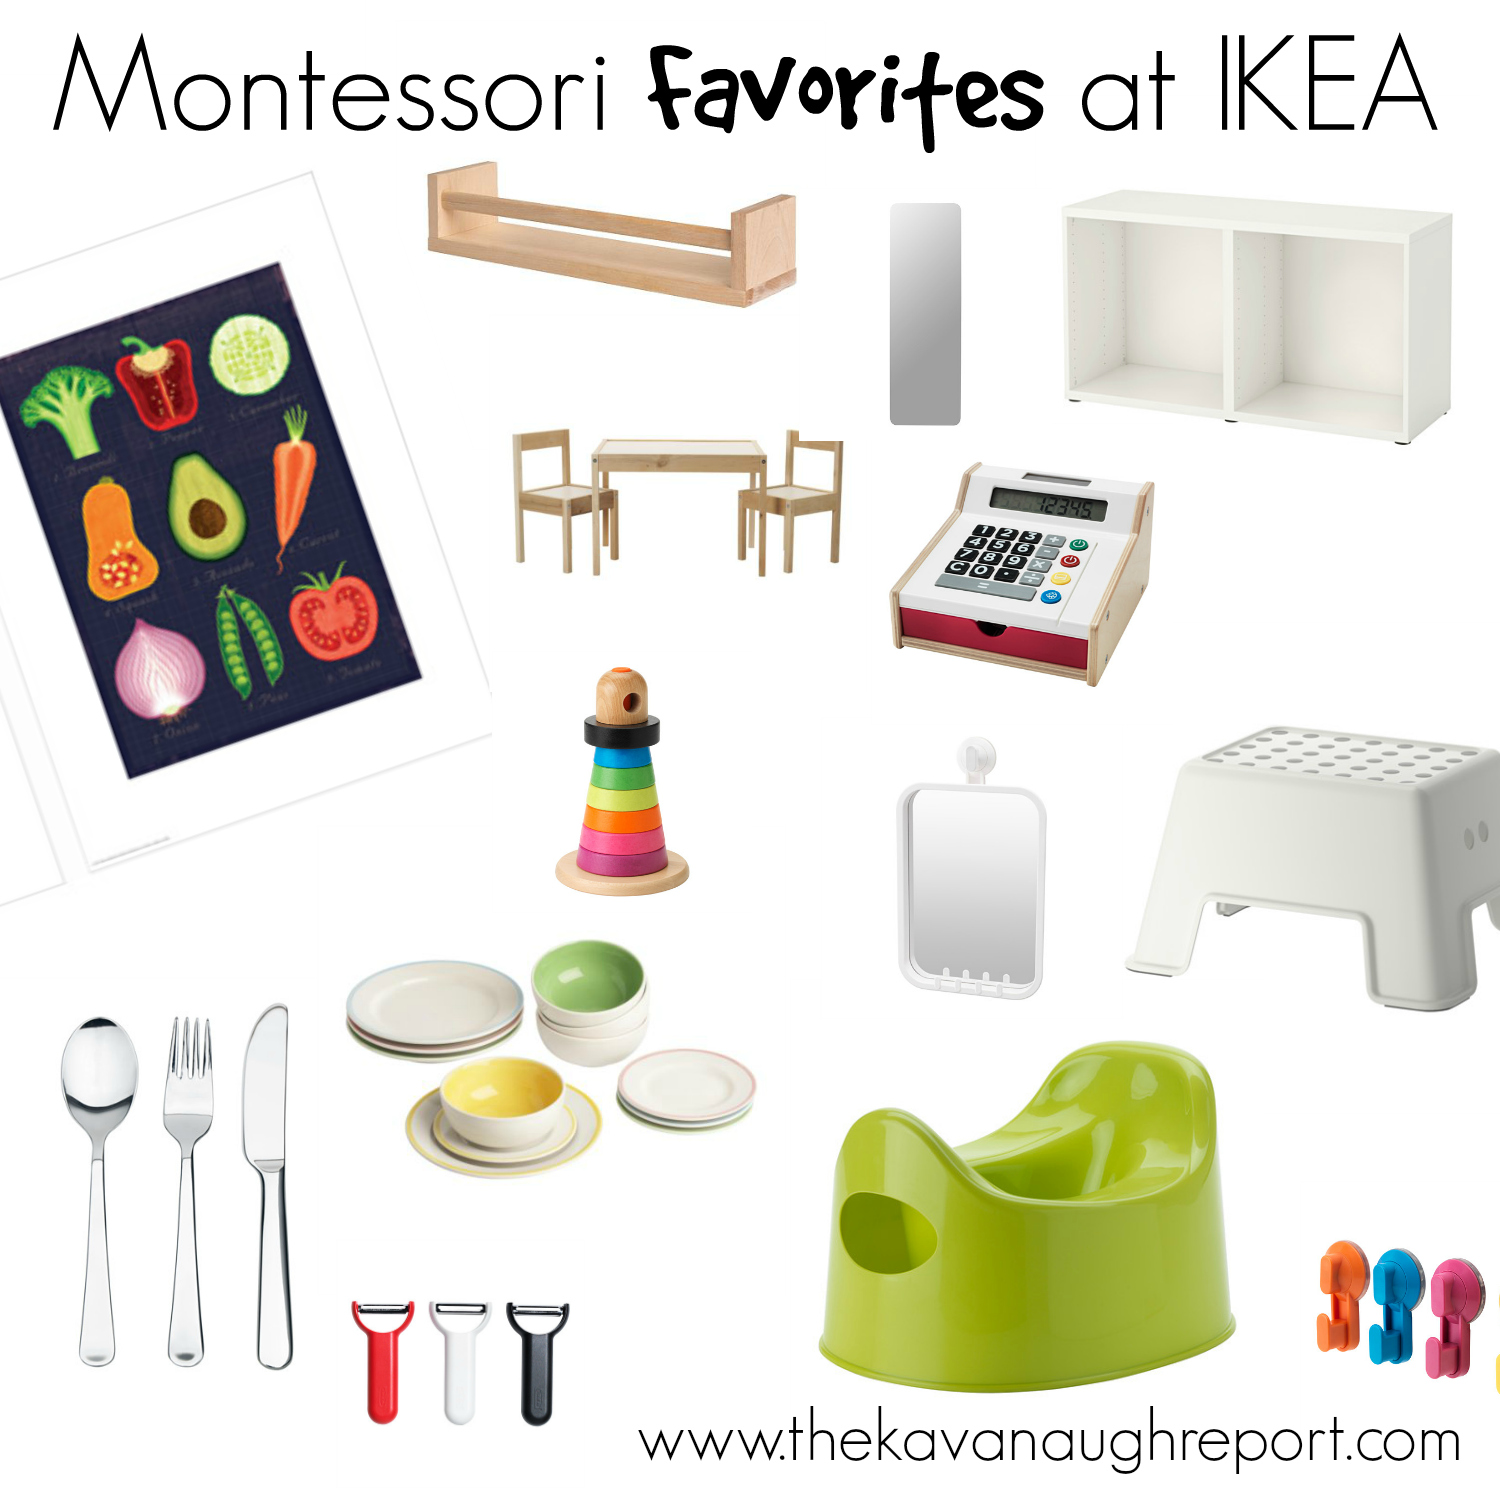 open kitchen ideas photos - My Montessori Favorites at IKEA